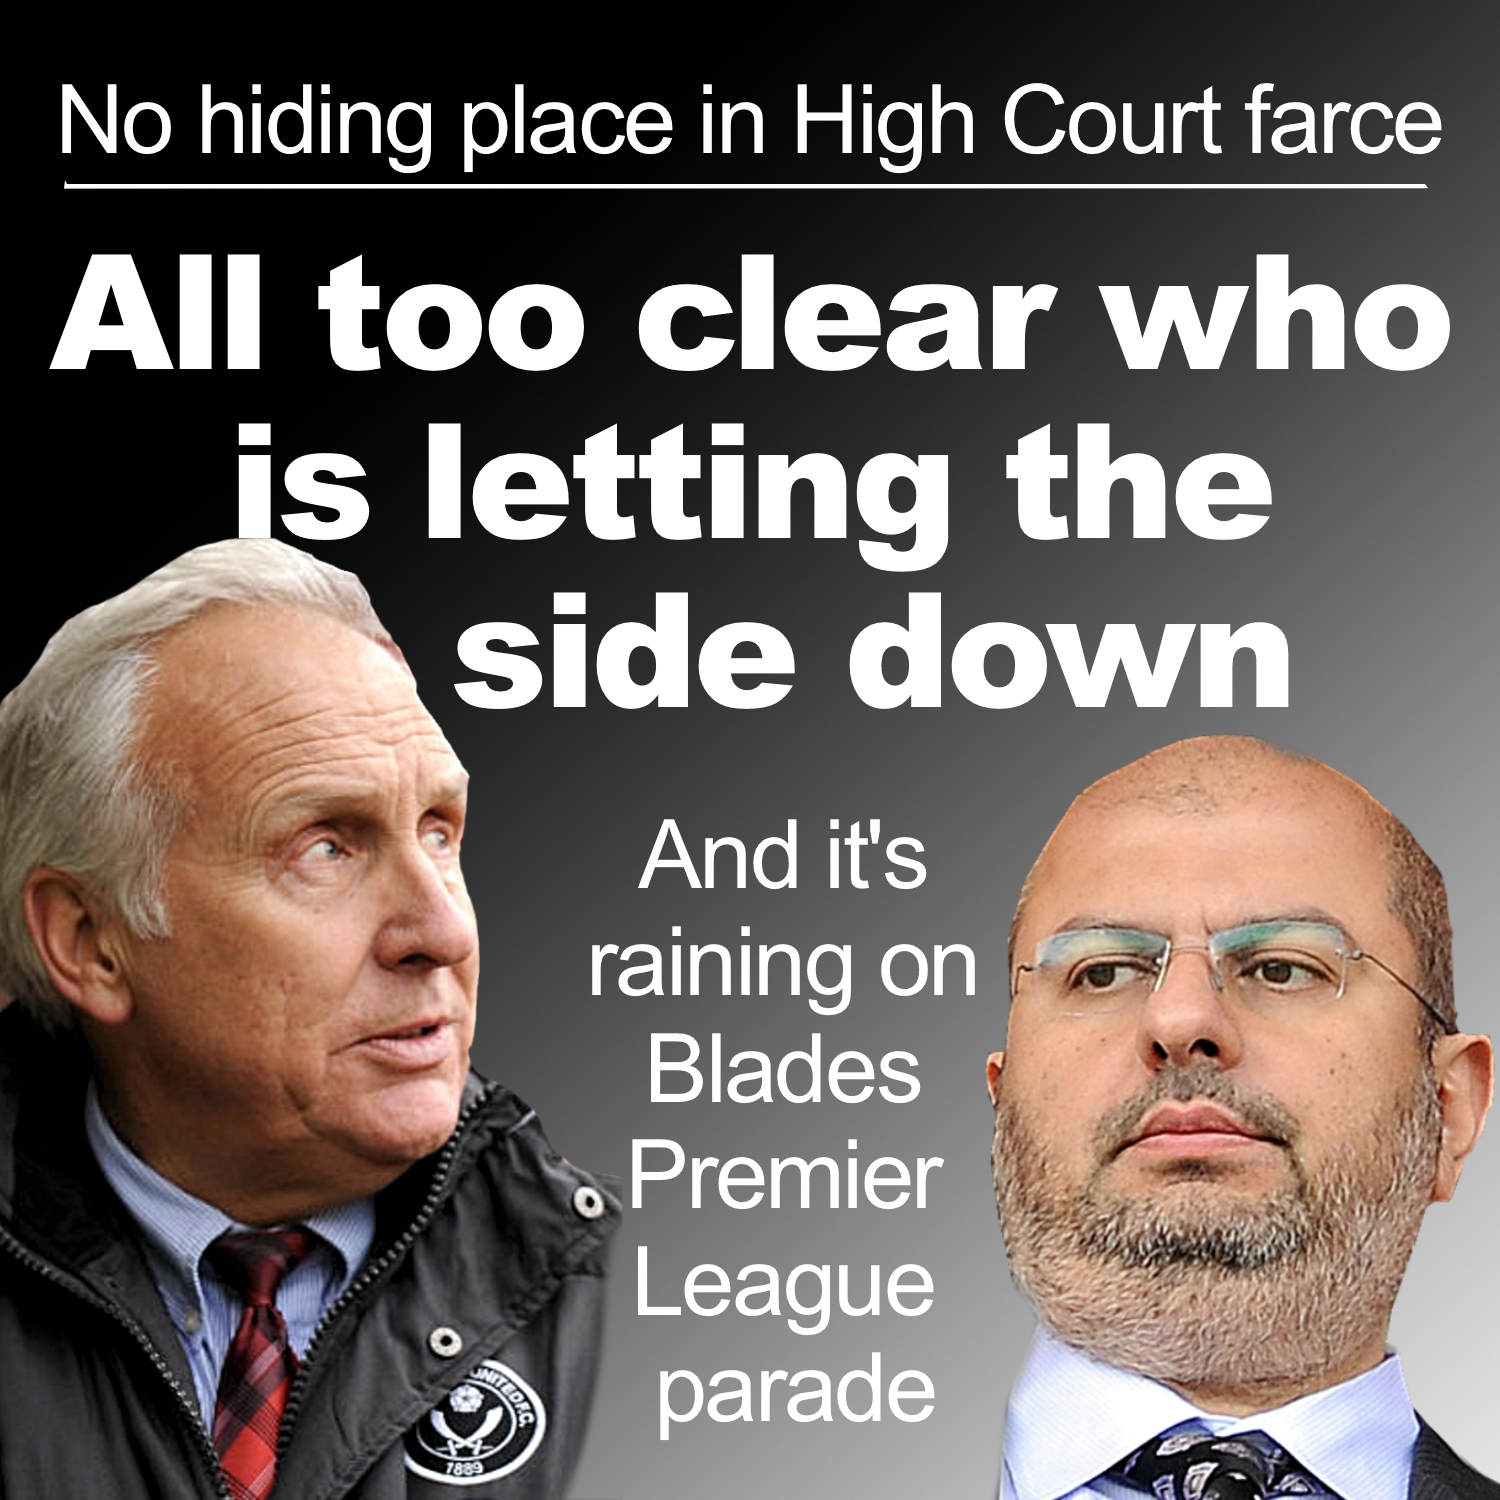 Co-owners of Sheffield United putting Blades successful return to Premier League at risk in disgraceful High Court farce